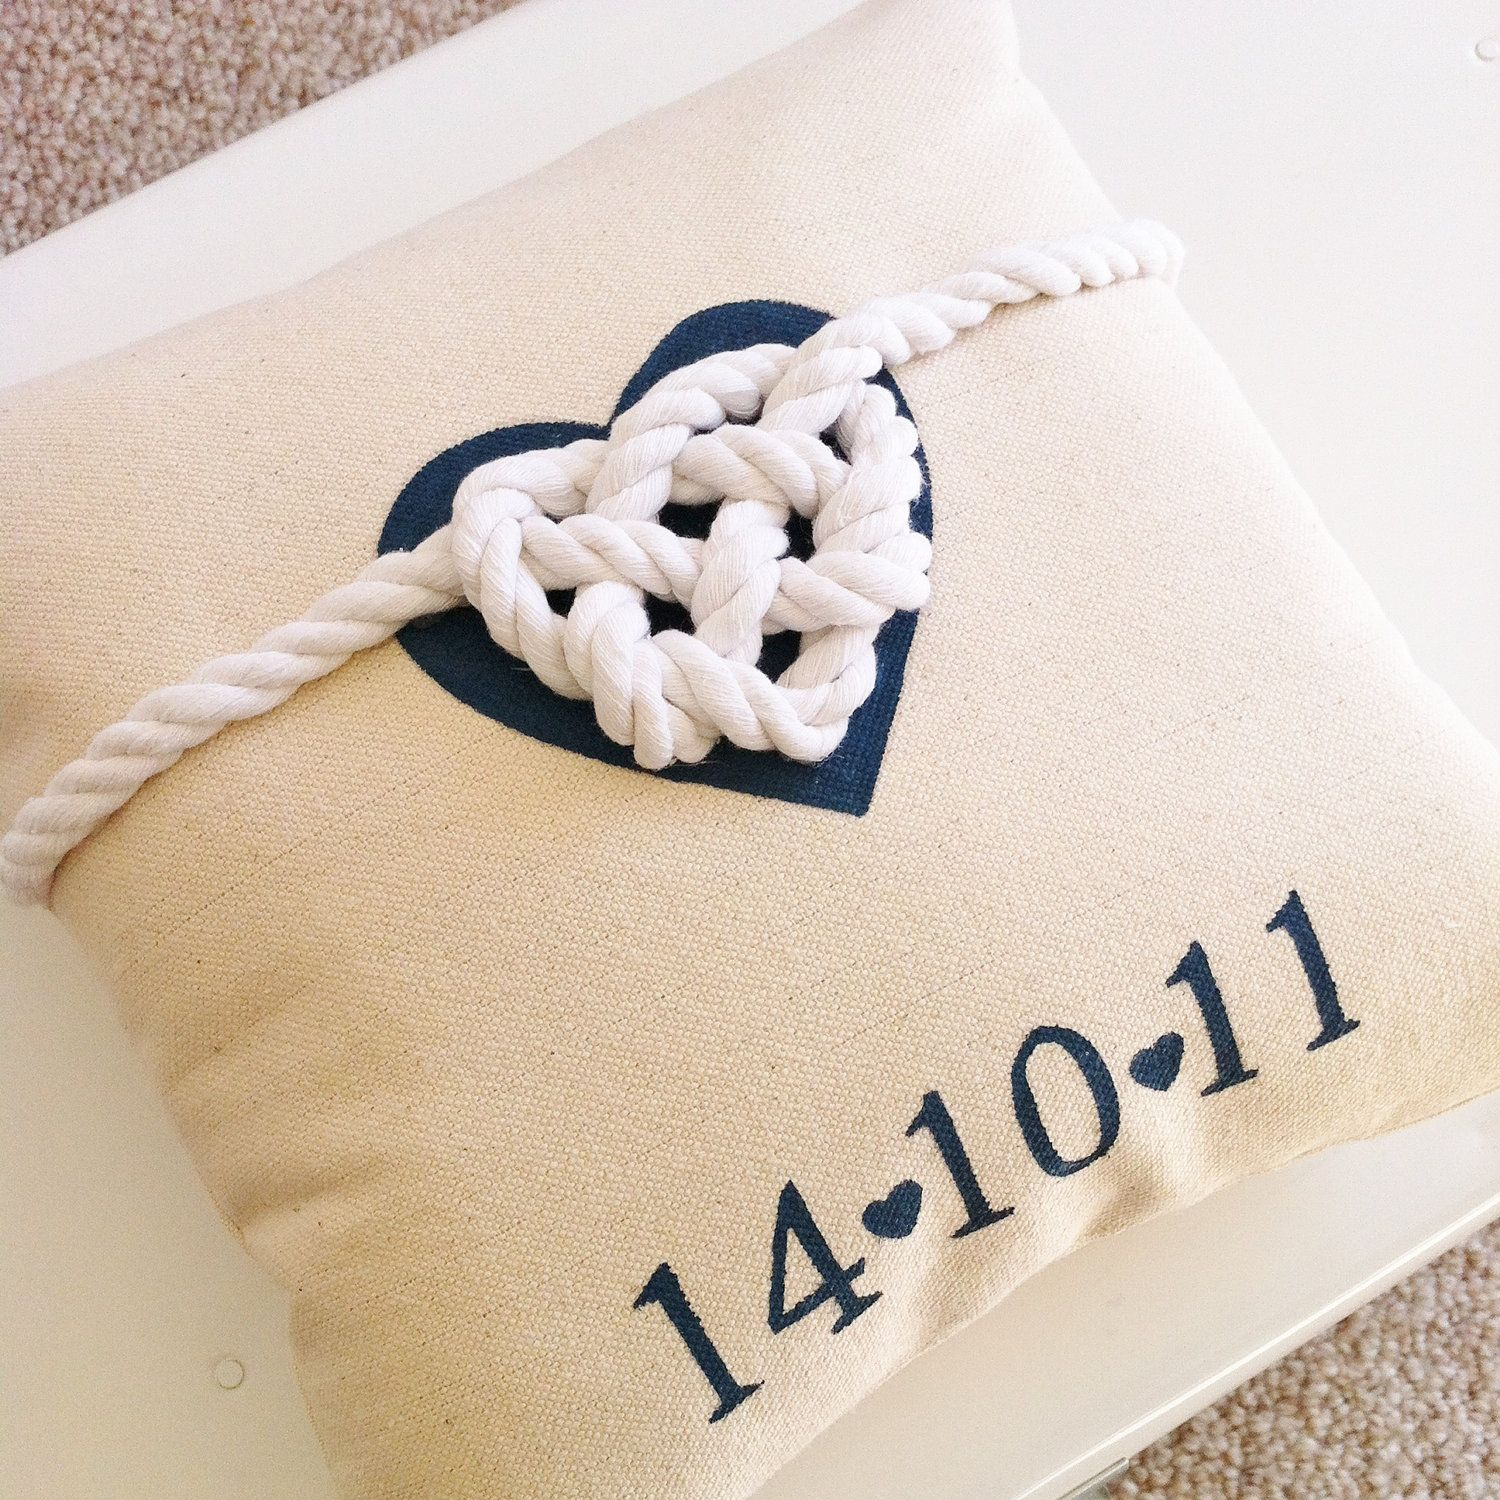 Personalized utied the knotu wedding pillow via etsy too